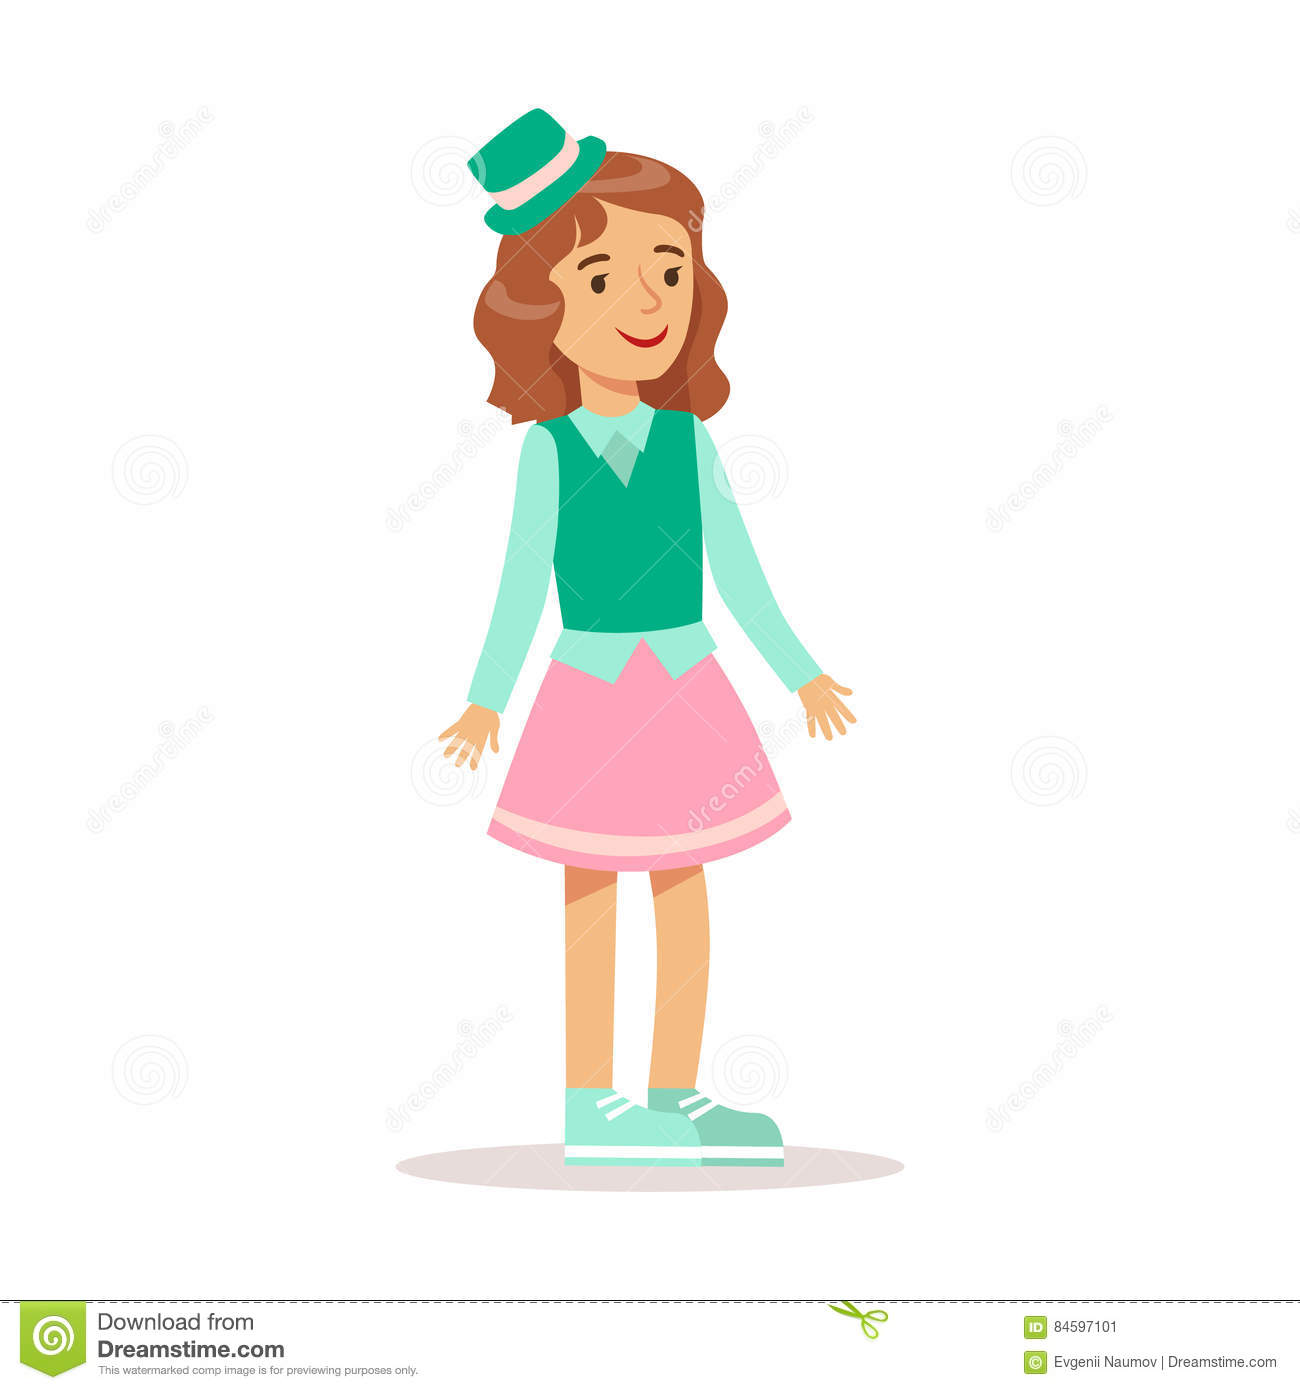 c941d1697 Happy Girl In Classic Girly Color Clothes With Green Top Hat Smiling  Cartoon Character